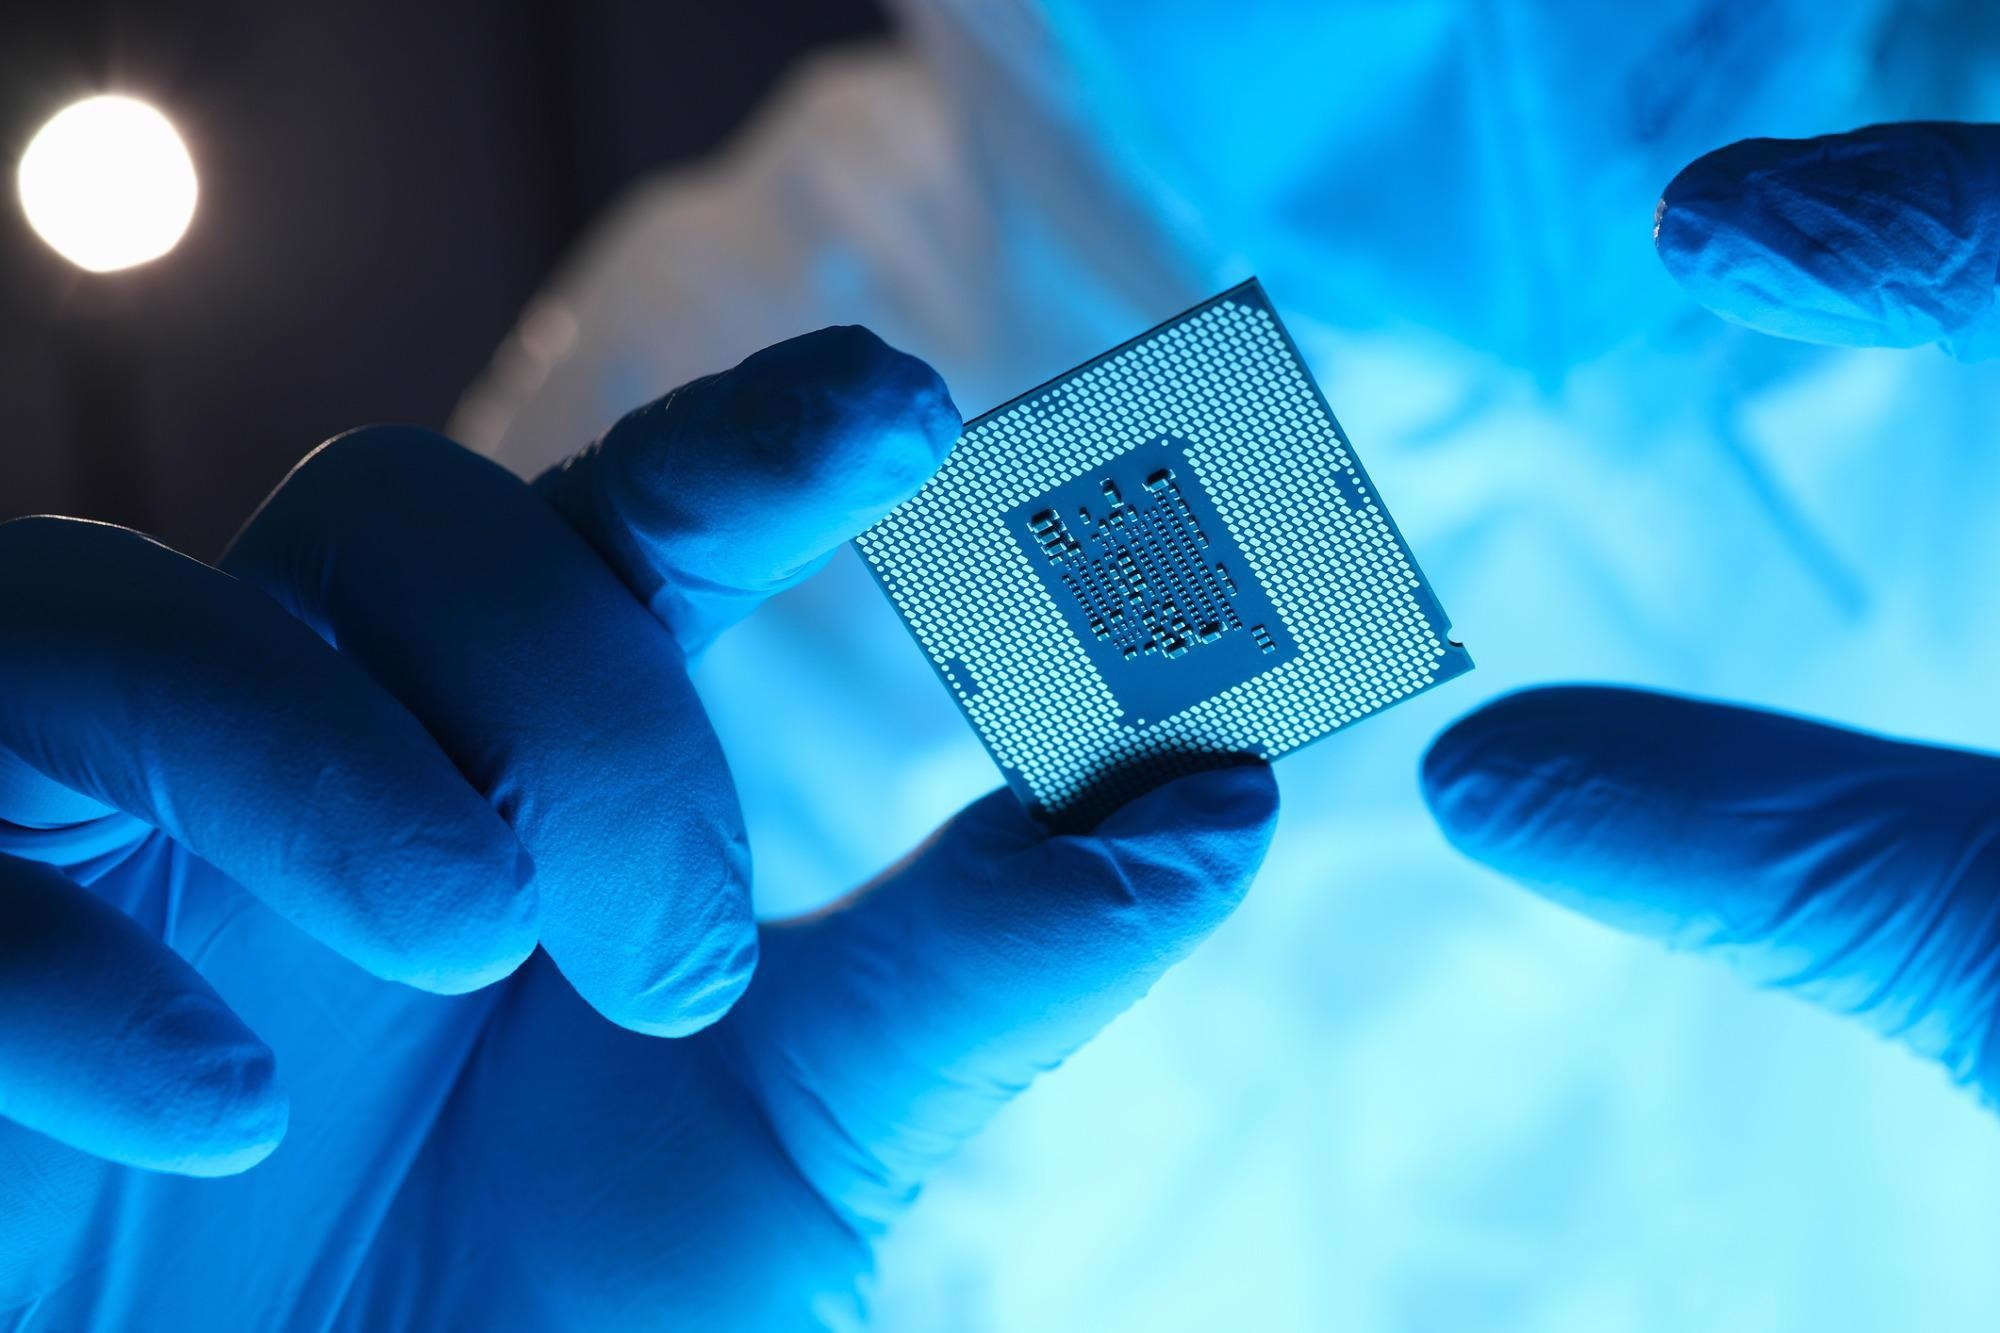 Hands in gloves hold chip testing microelectronics. Setting operating modes electronic controllers. Use chip tuning to increase power. Repair microprocessor electronics electrical equipment.